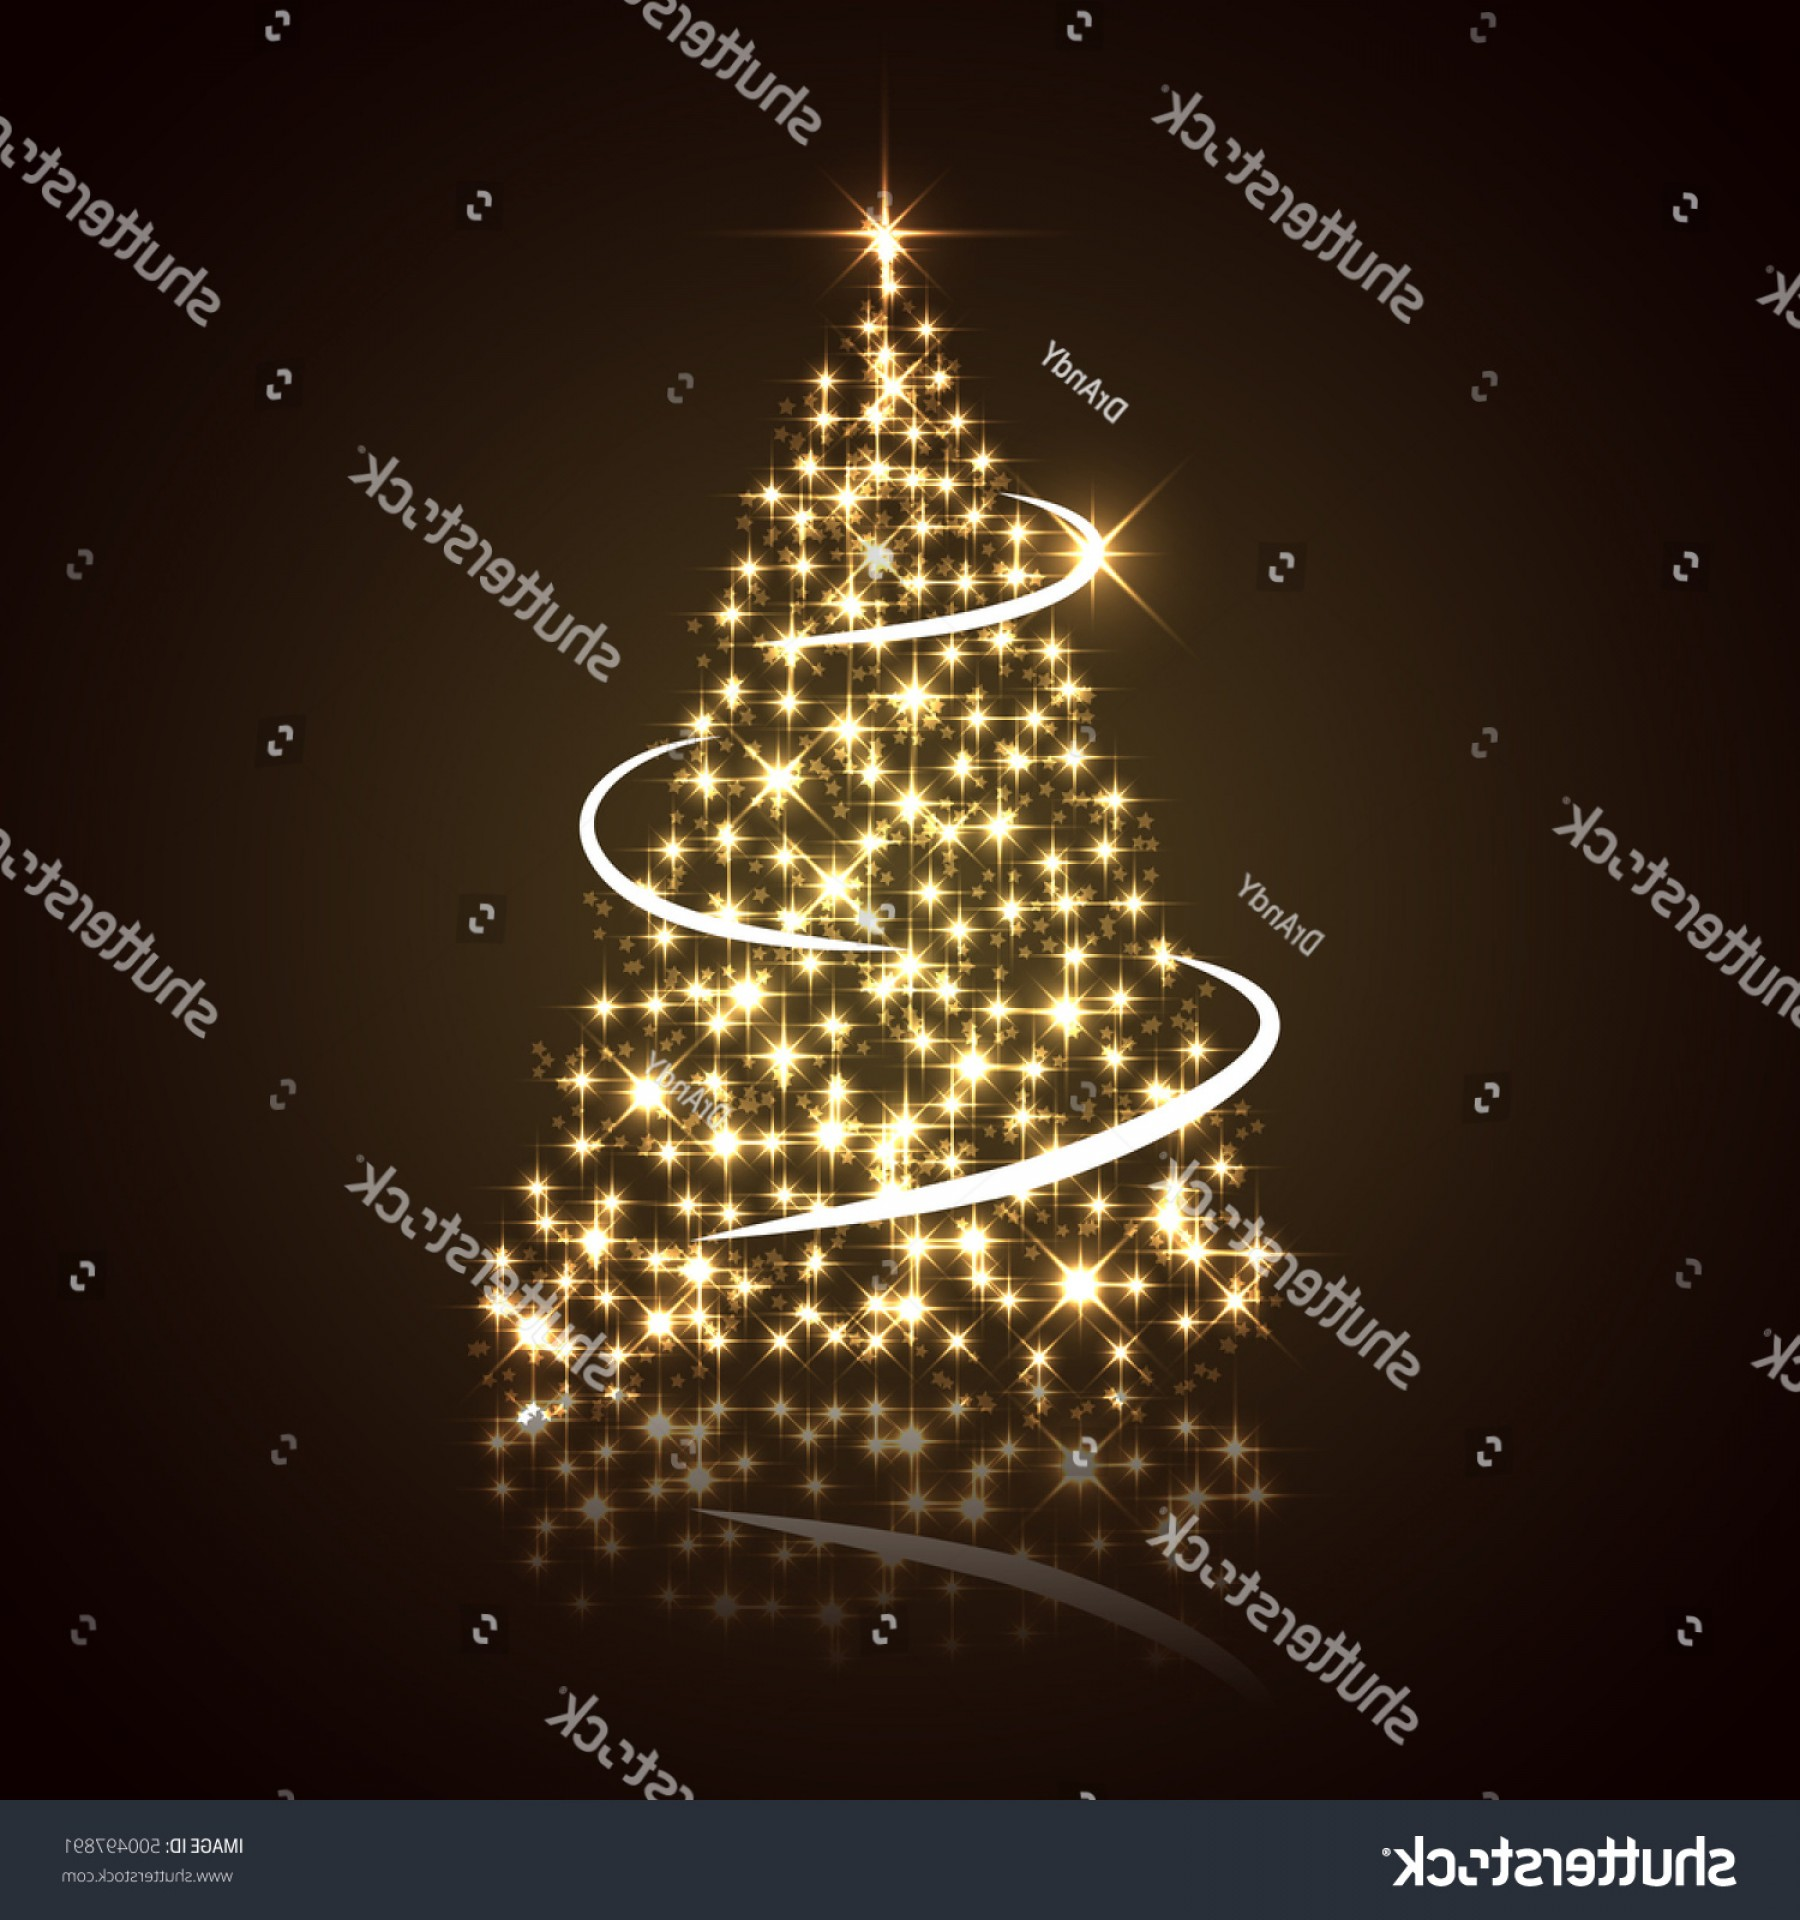 Less Christmas Tree Abstract Vector Background: New Year Christmas Tree Composed Shiny